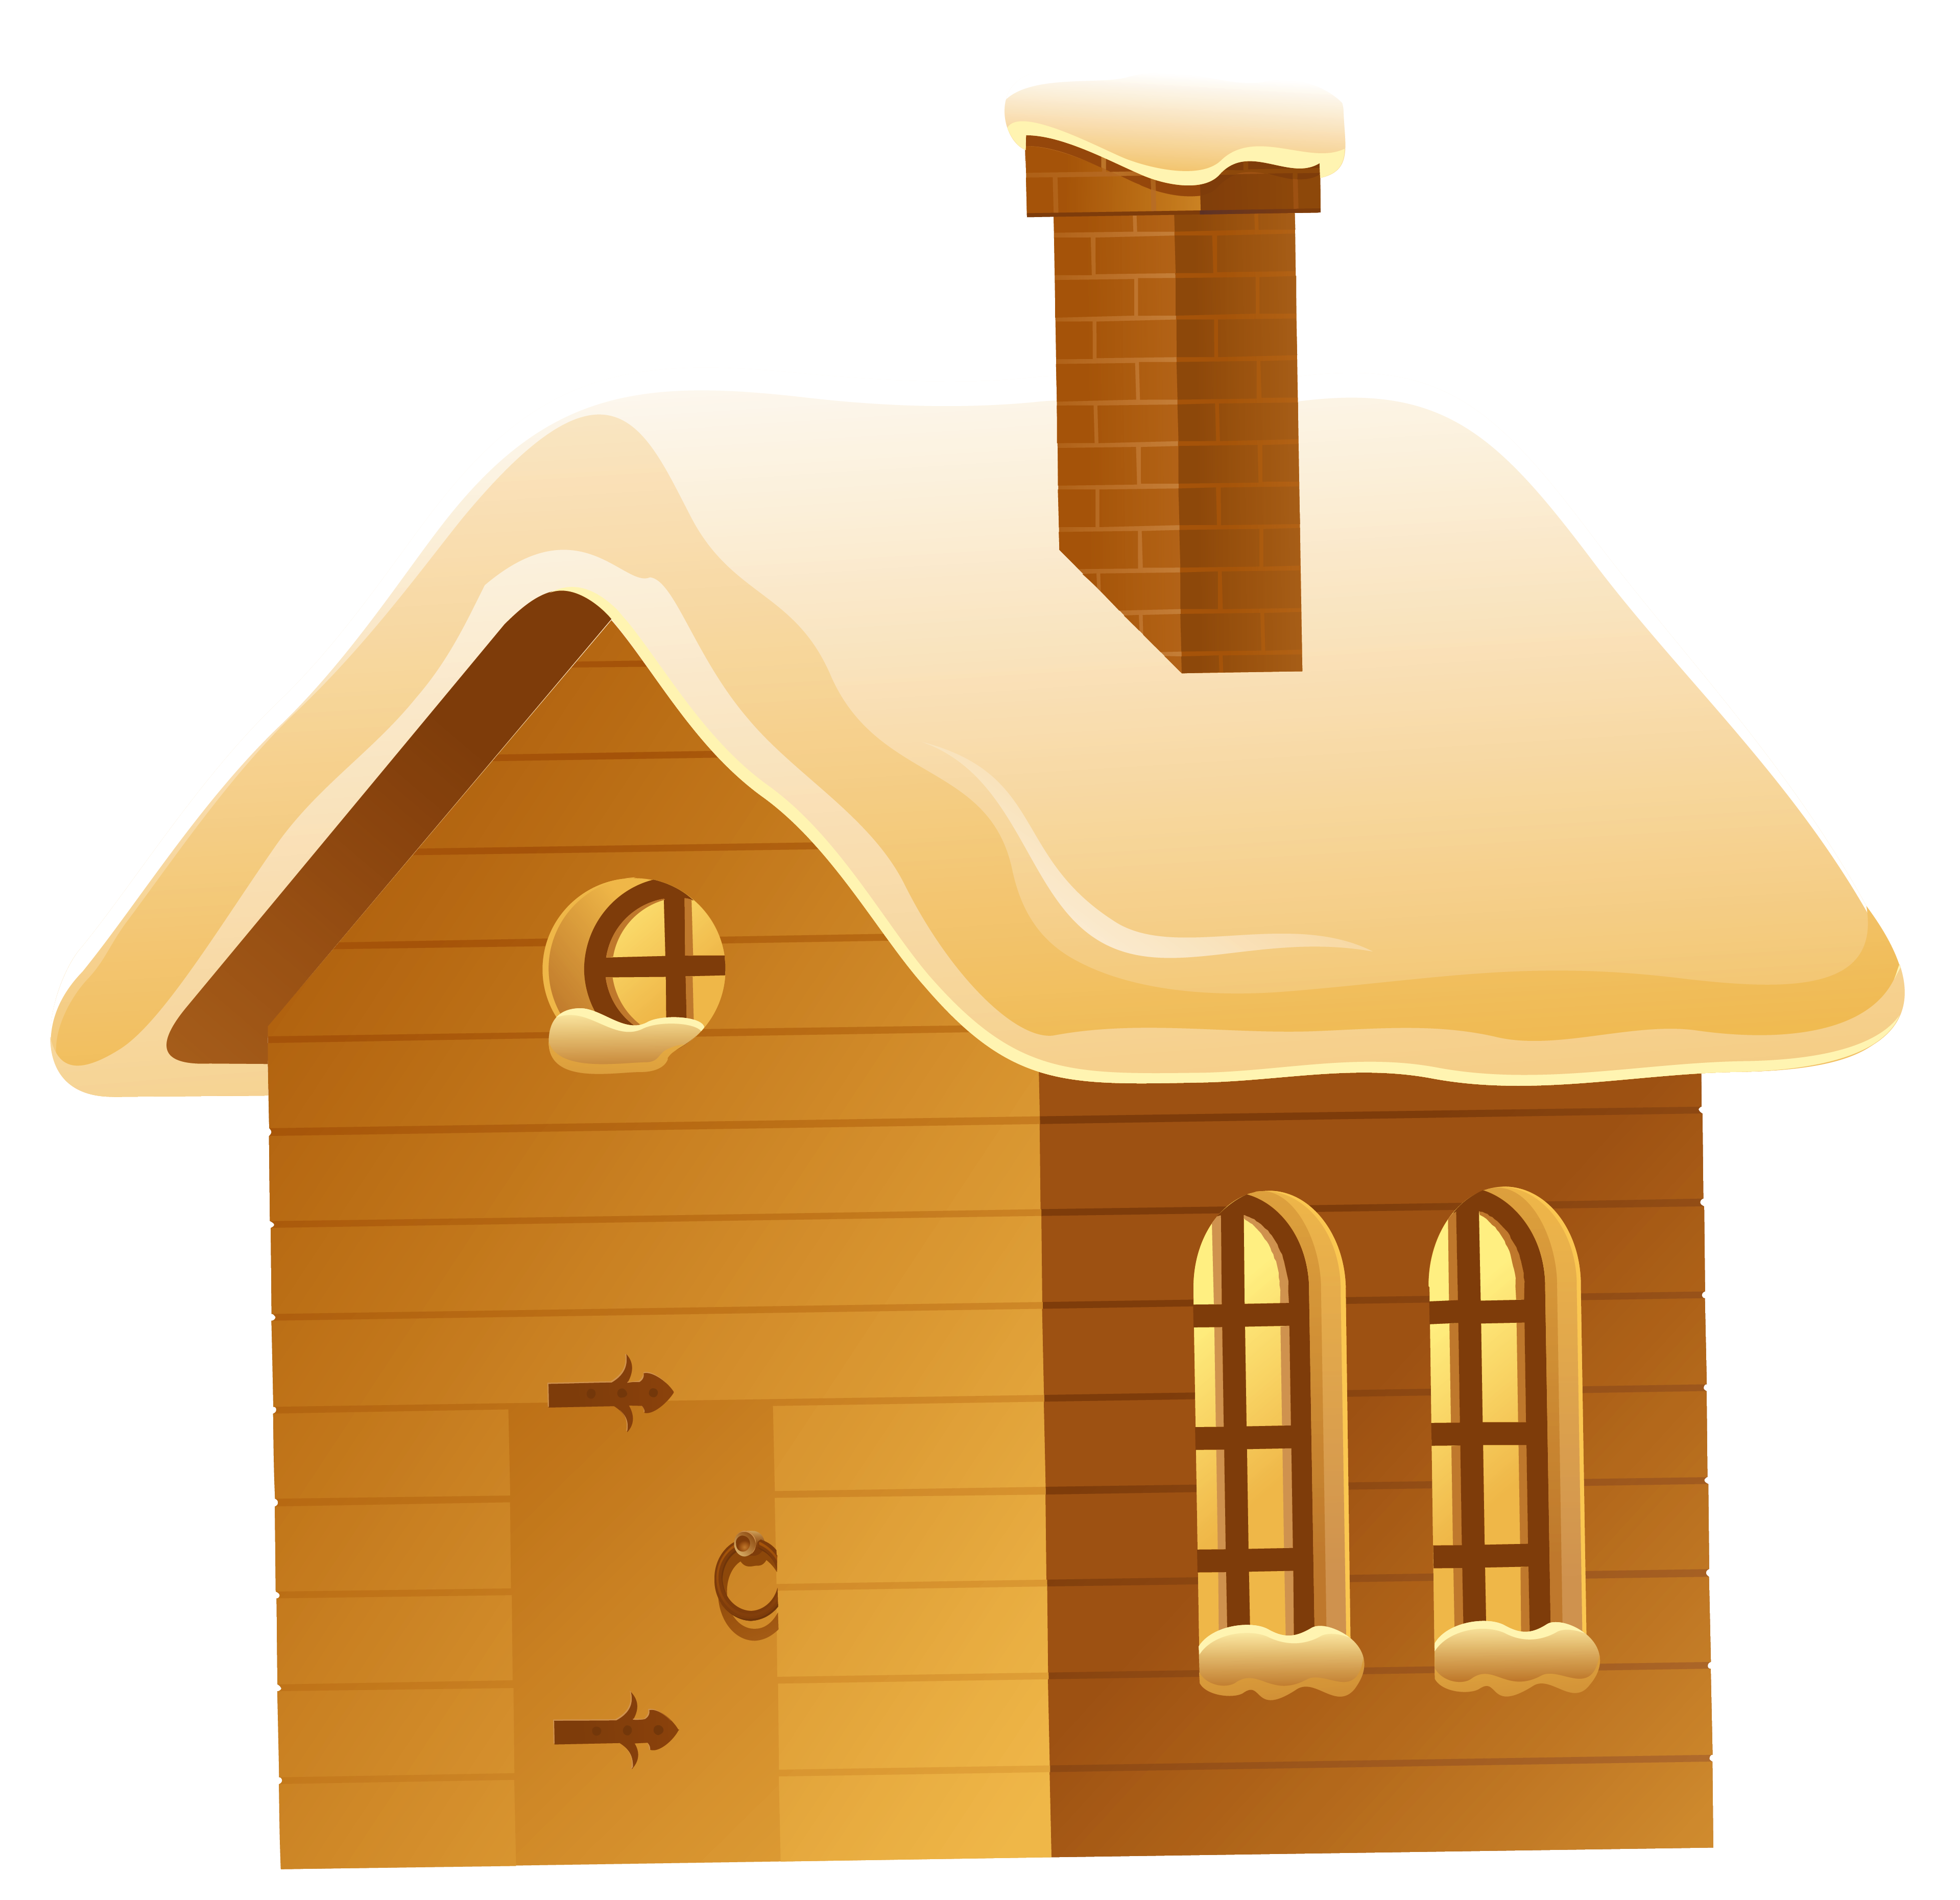 House at day and. Winter clipart night